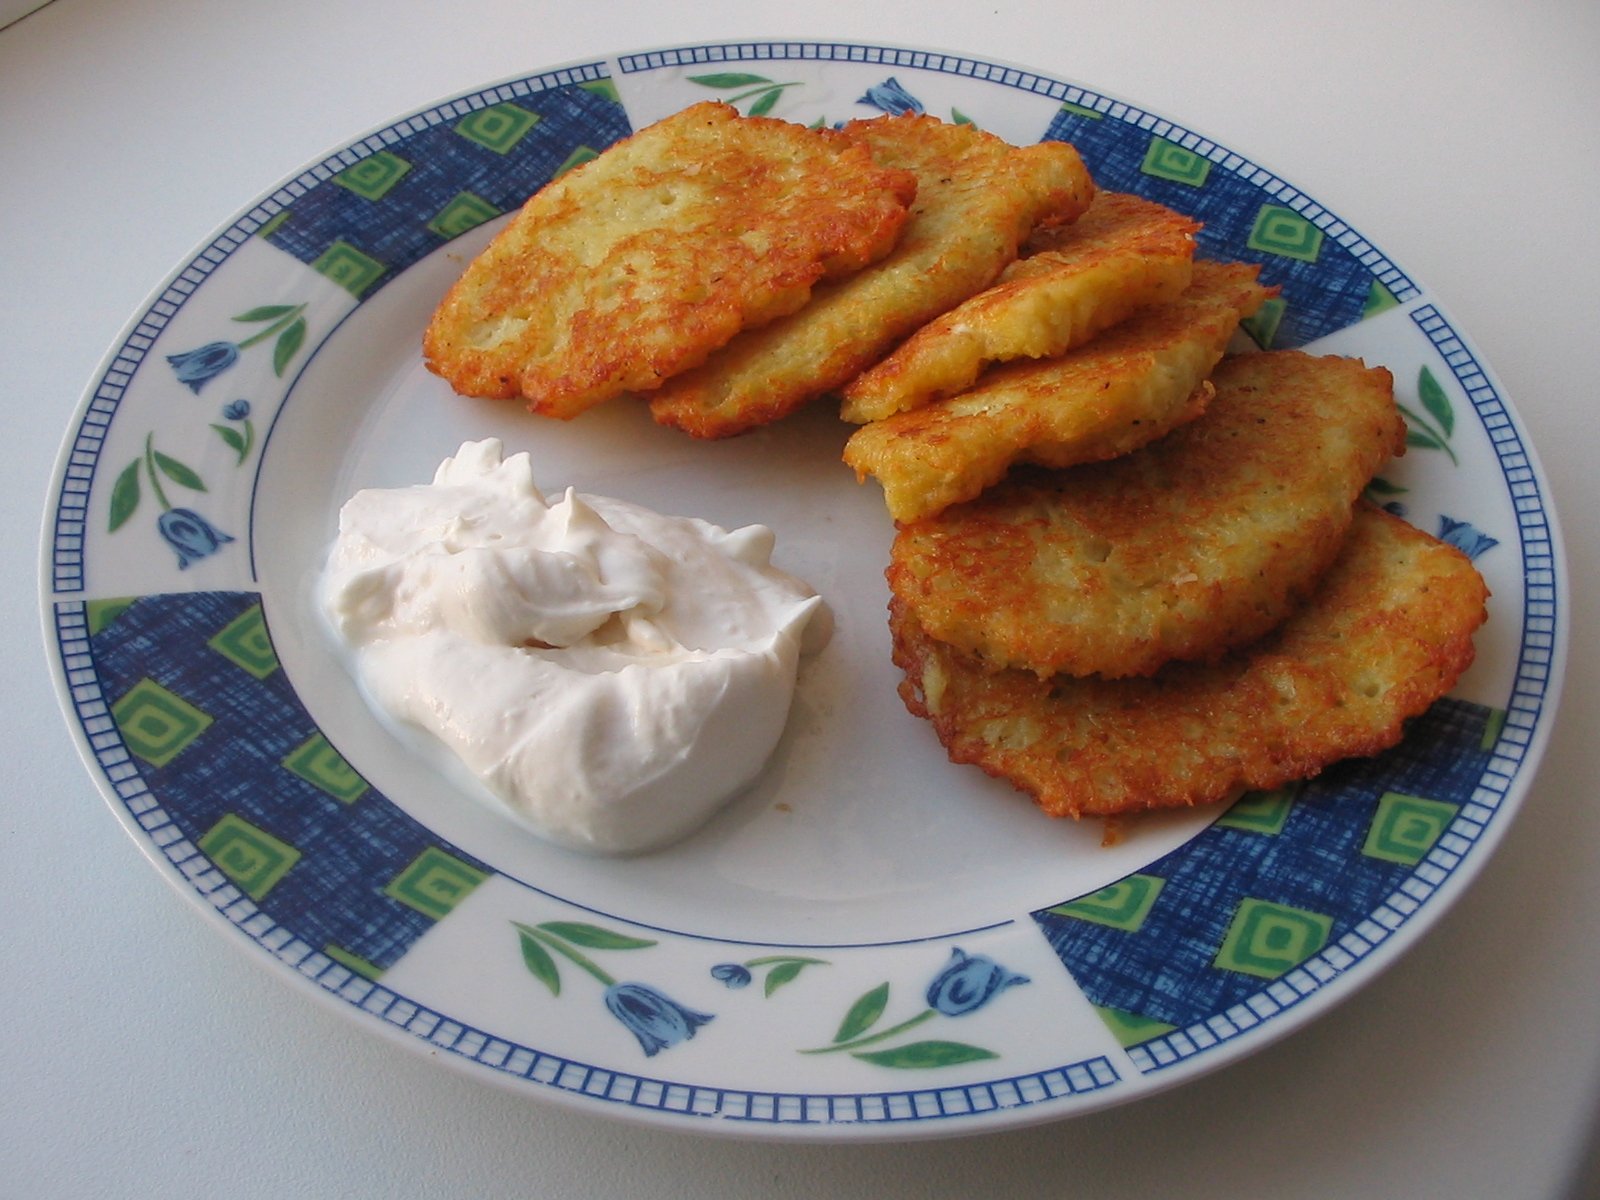 File:Ukrainian potato pancakes.jpg - Wikimedia Commons